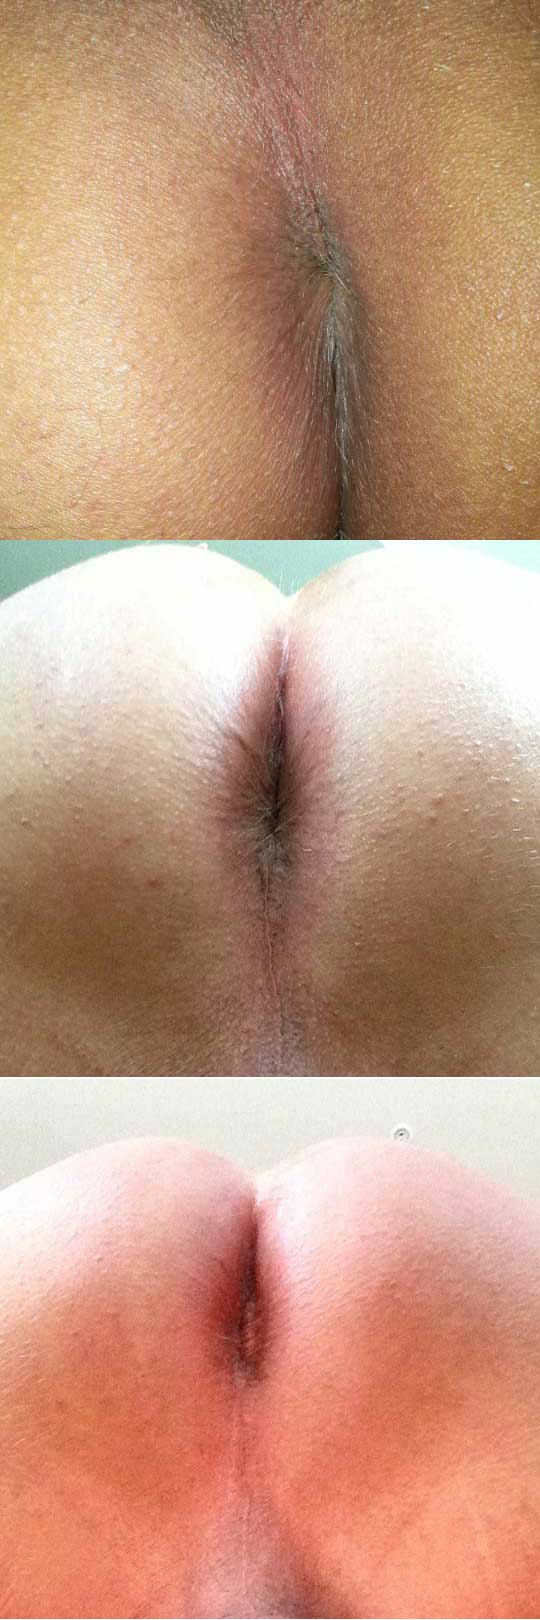 Fantasymassage your wife will never find out